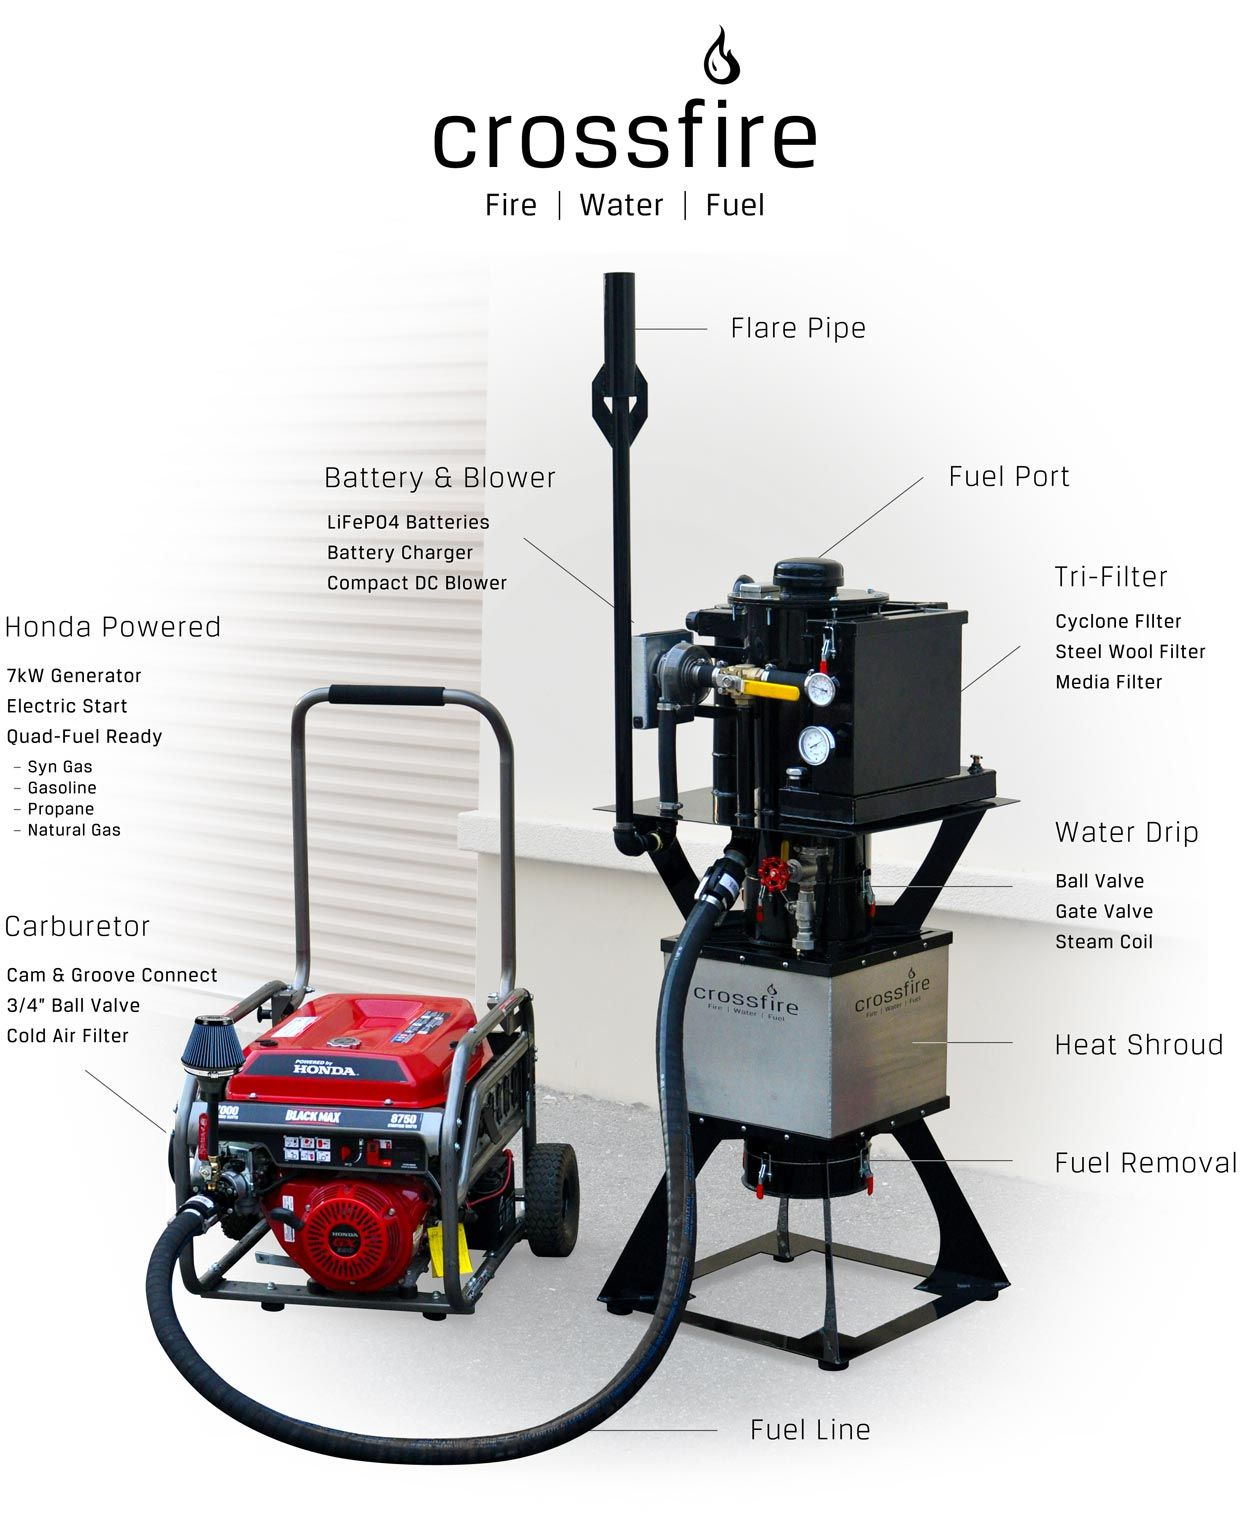 Crossfire Gasifier Alternative Energy Alternative Energy Sources Off The Grid